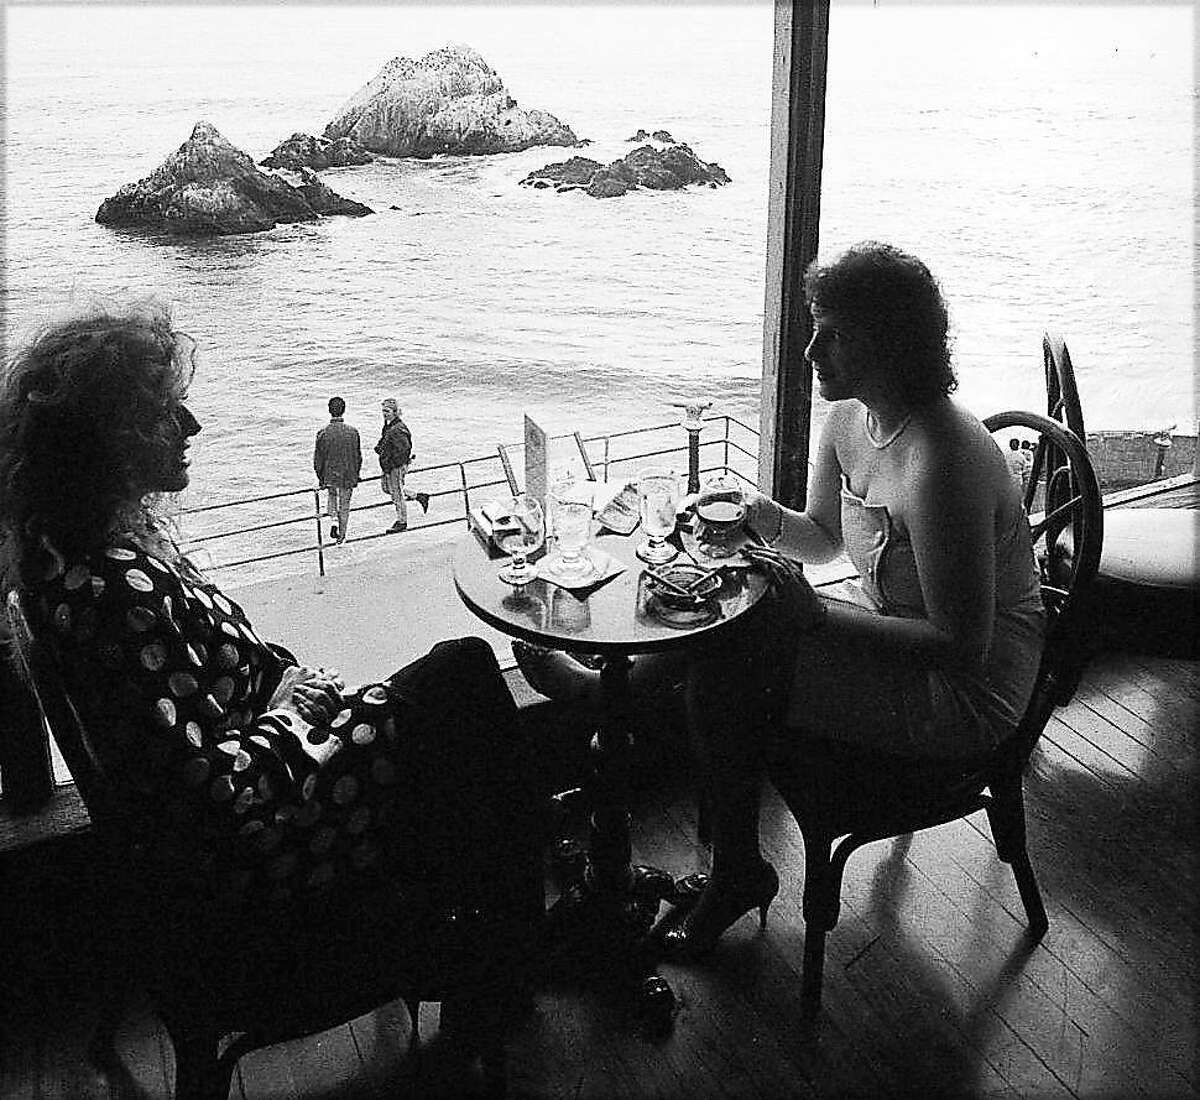 Diners enjoy the view at the Cliff House in 1989.